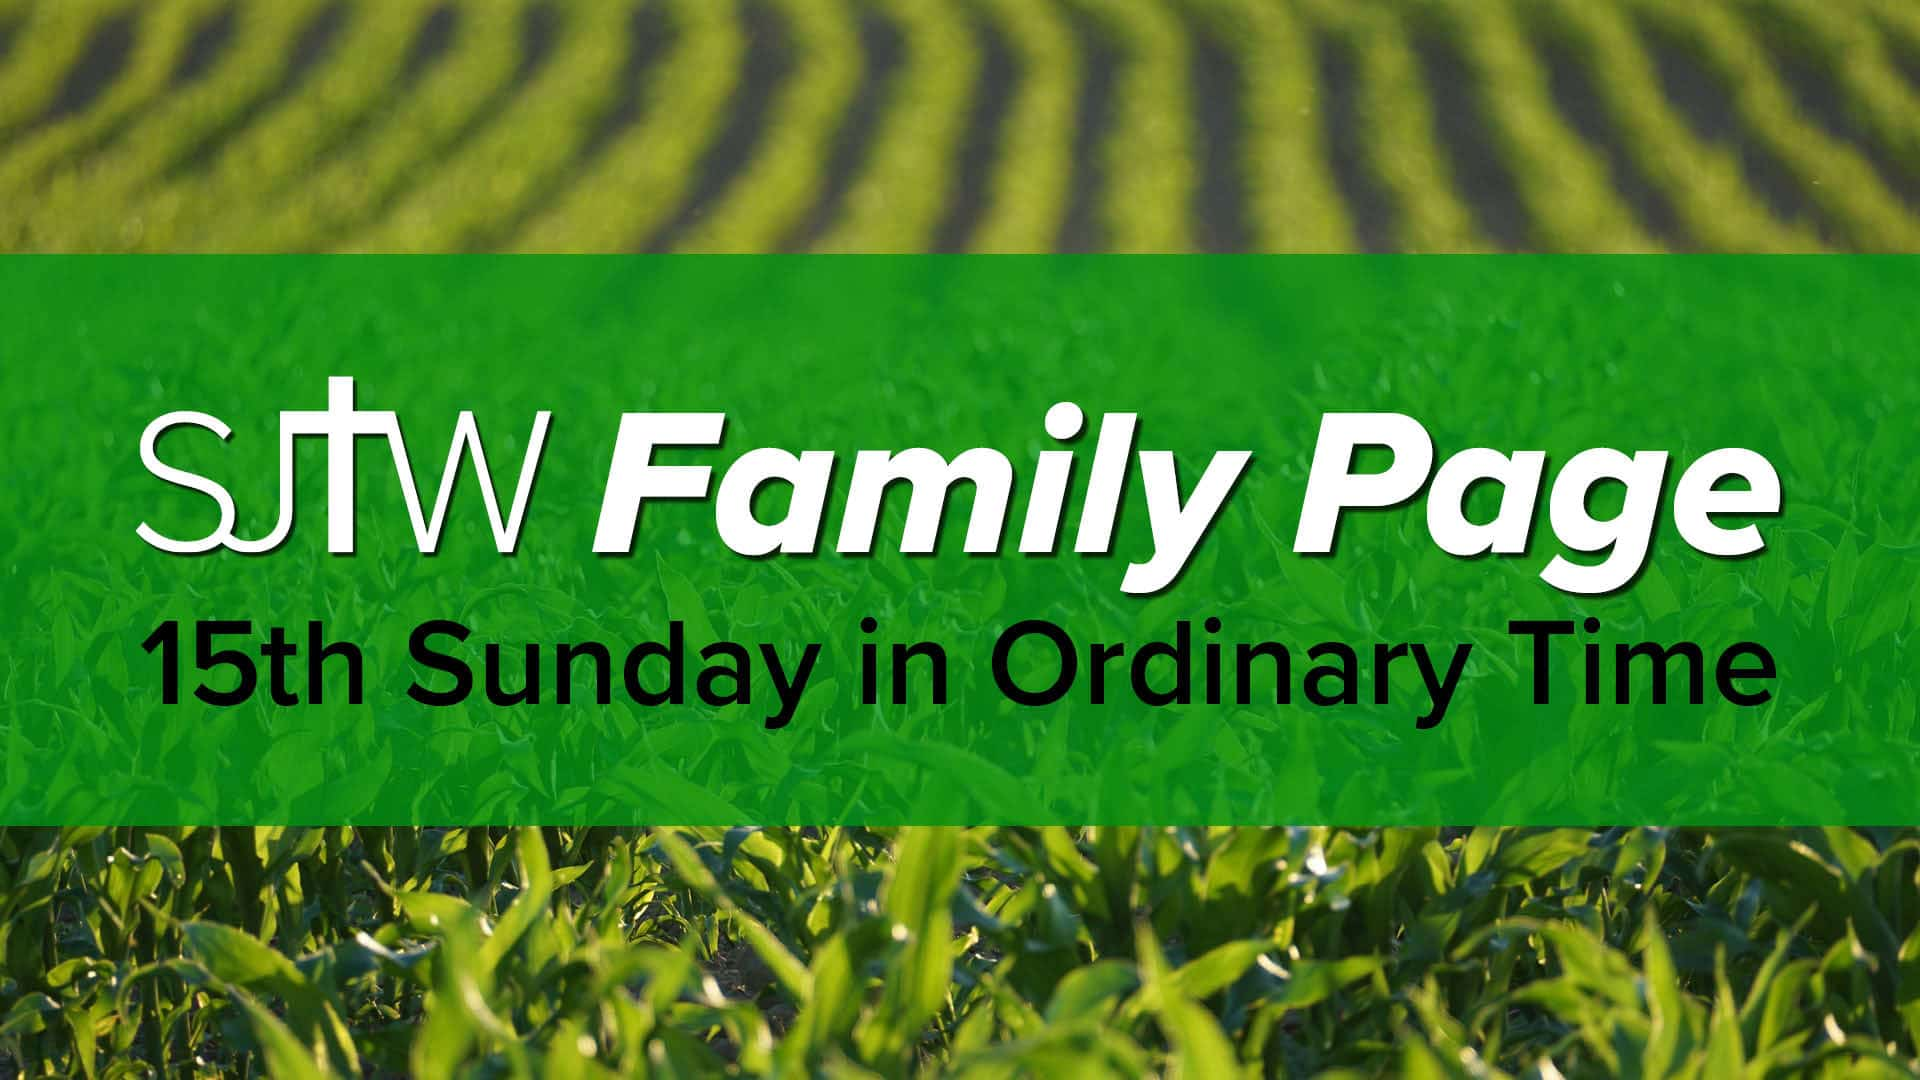 Family Page - 15th Sunday in Ordinary Time